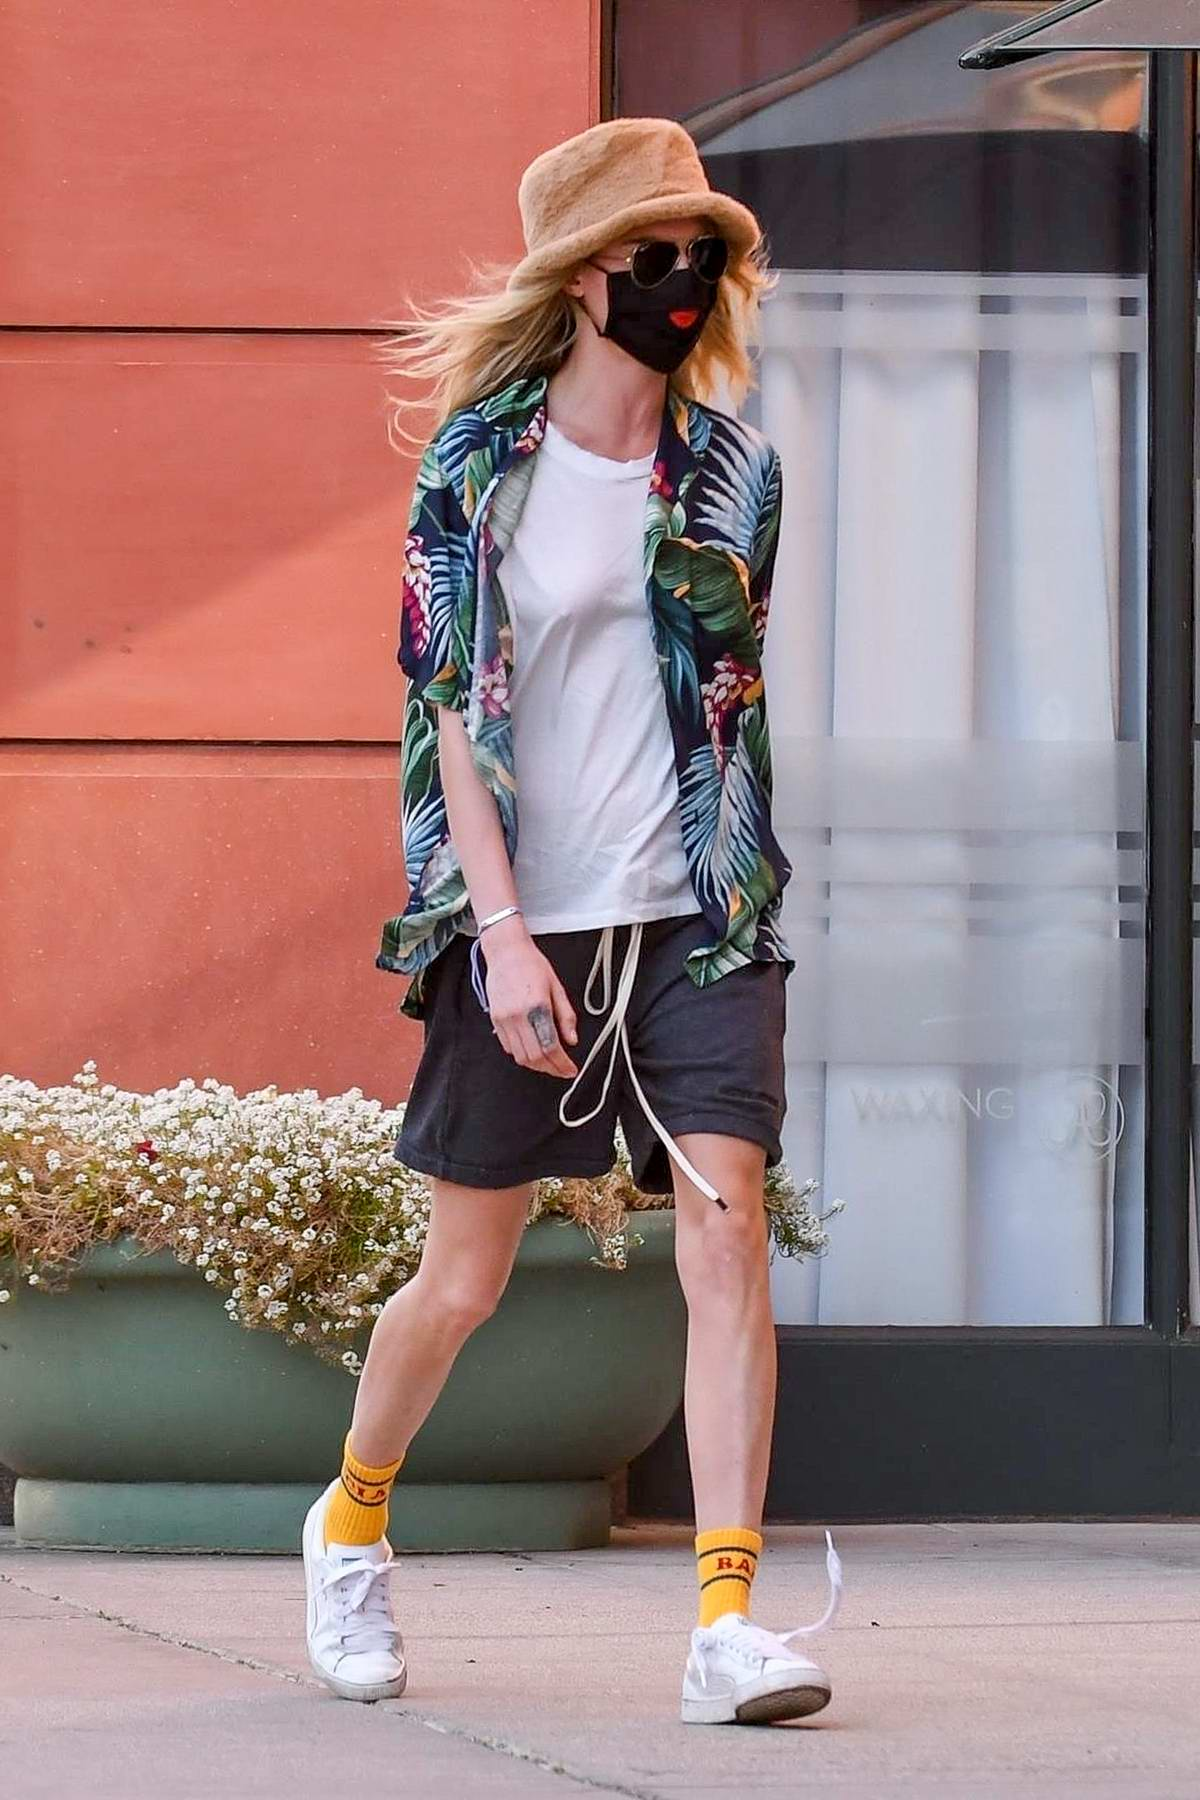 Cara Delevingne rocks a tropical print shirt, white tee and drawstring shorts as she steps out in Beverly Hills, California